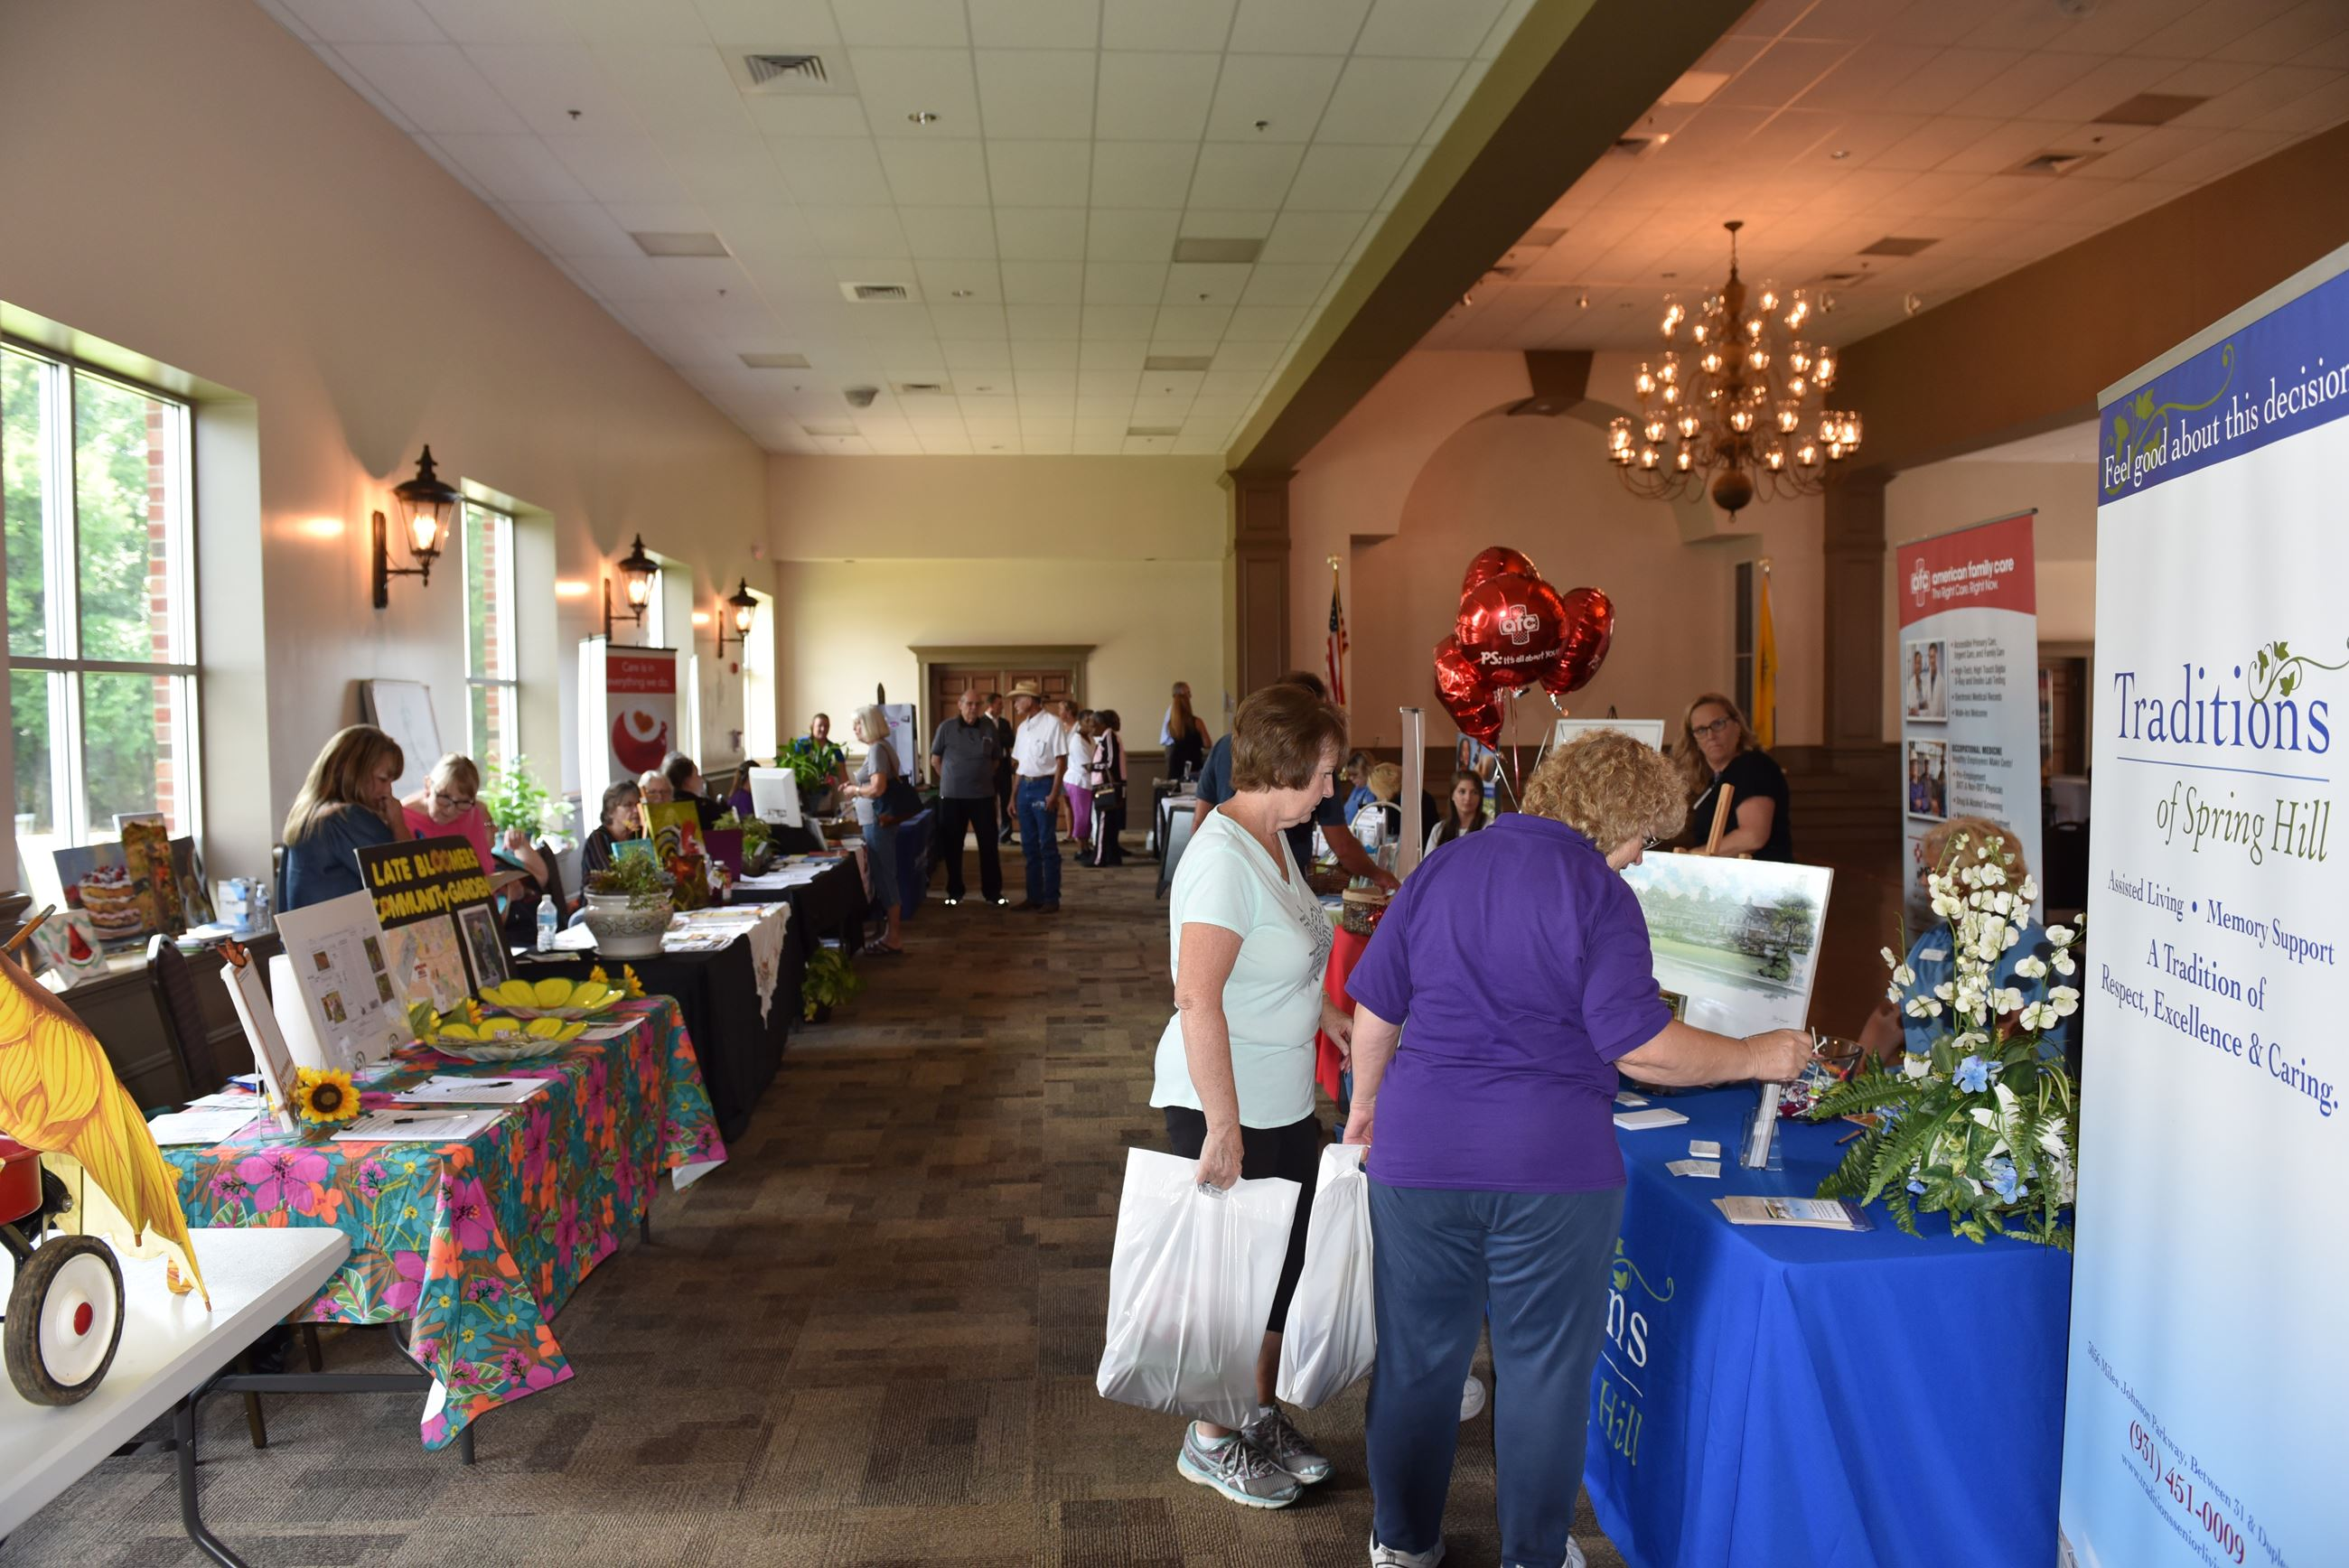 8th Annual Spring Hill Health & Wellness Fair July 19 & 20